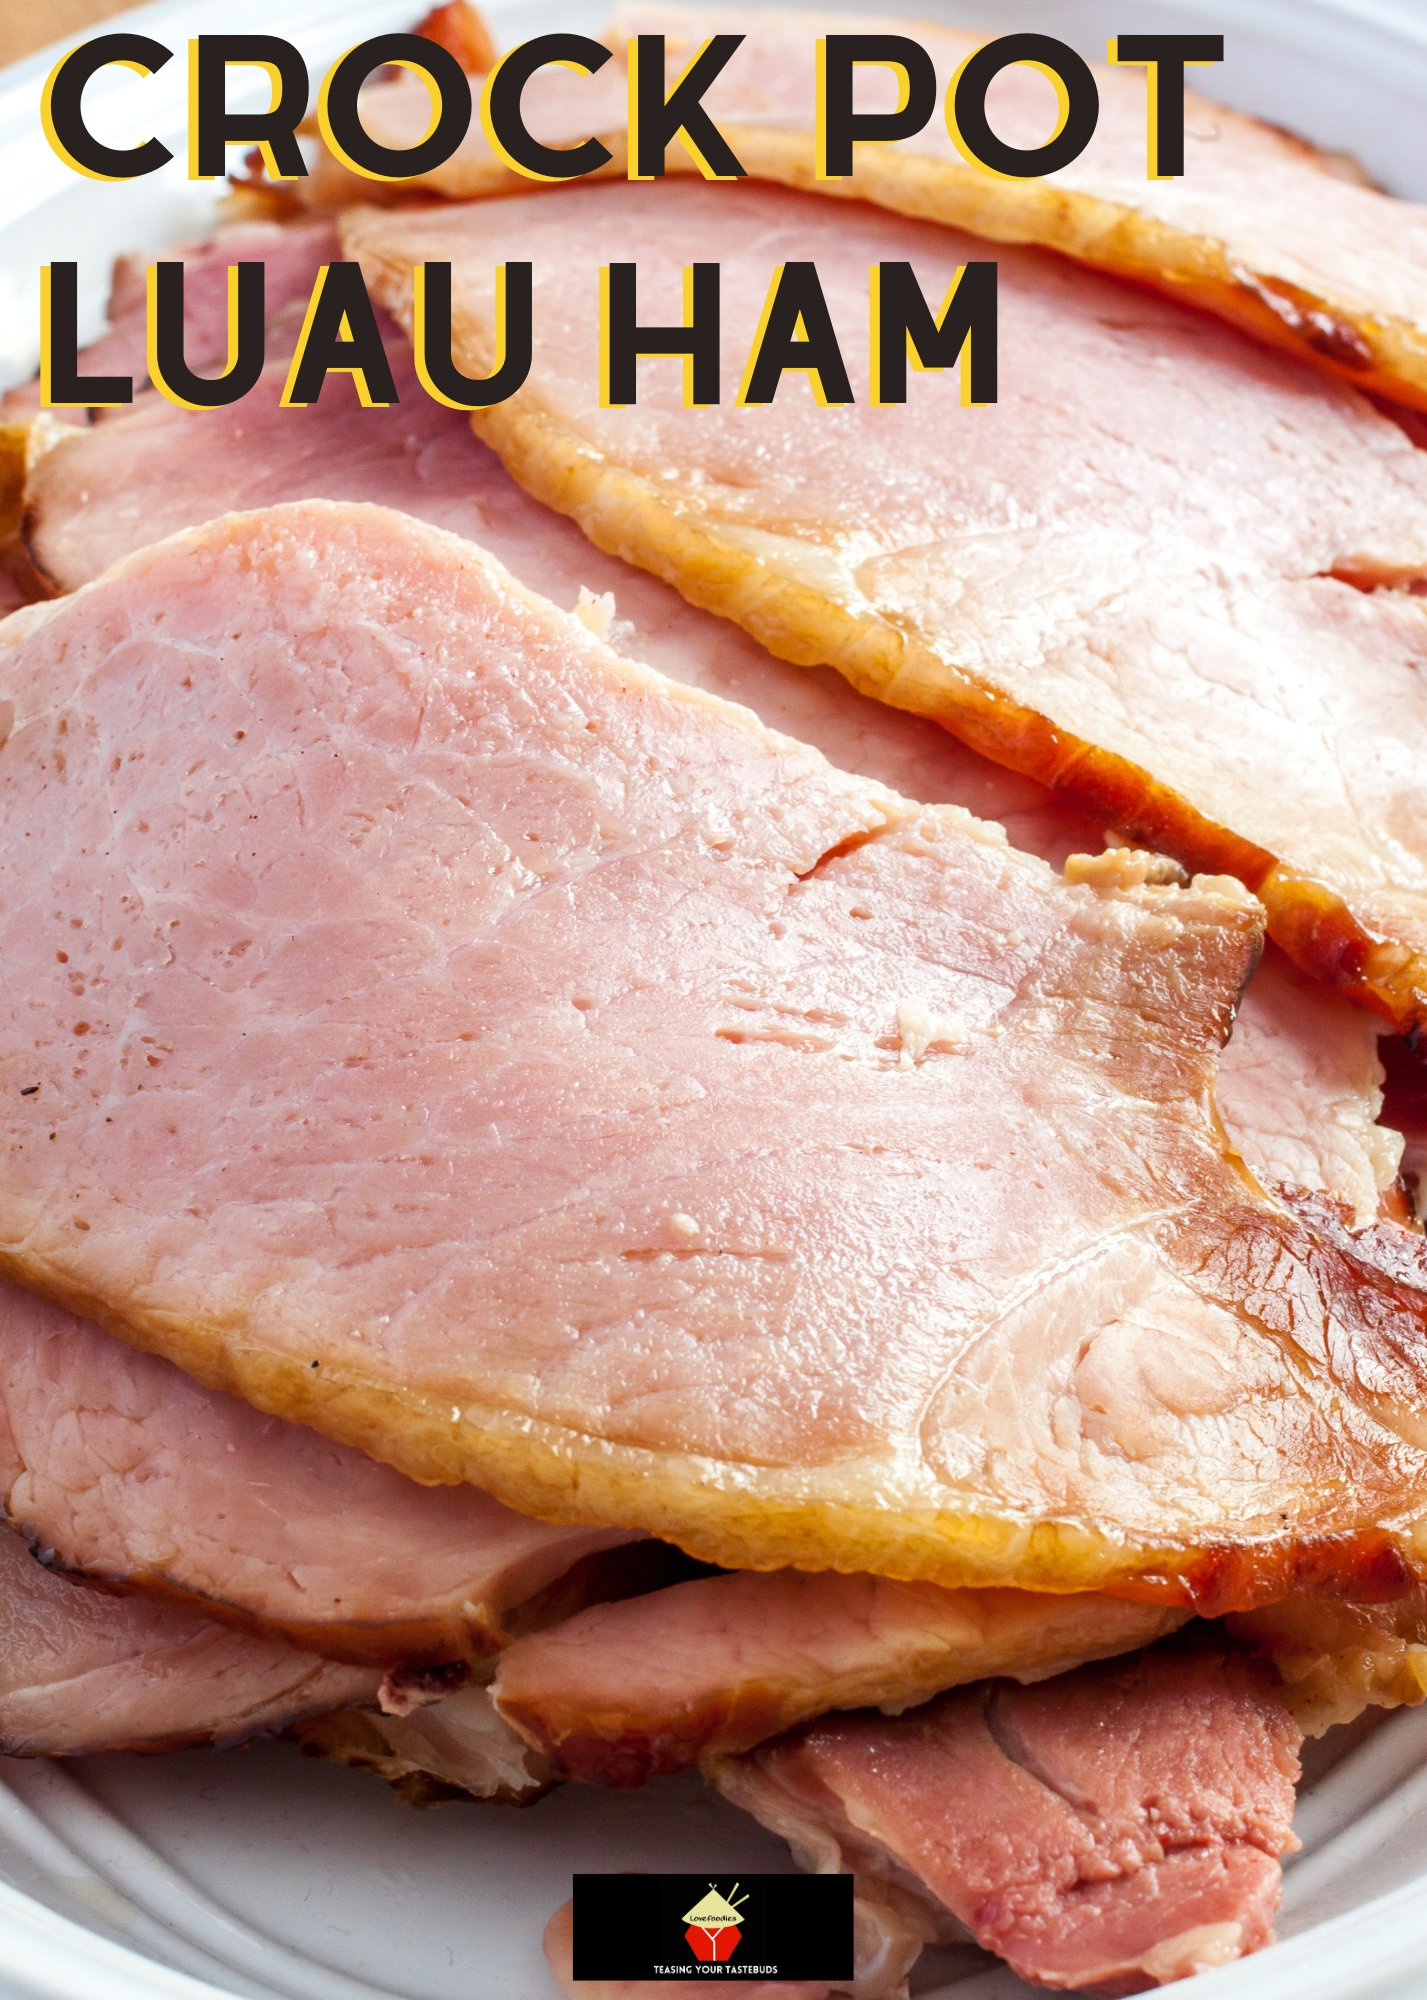 Crock Pot Luau Ham, a delicious tender juicy slow cooked ham with great flavor! This is great to have as a main meal or indeed use as cold cuts, for appetizers, parties, sandwiches.